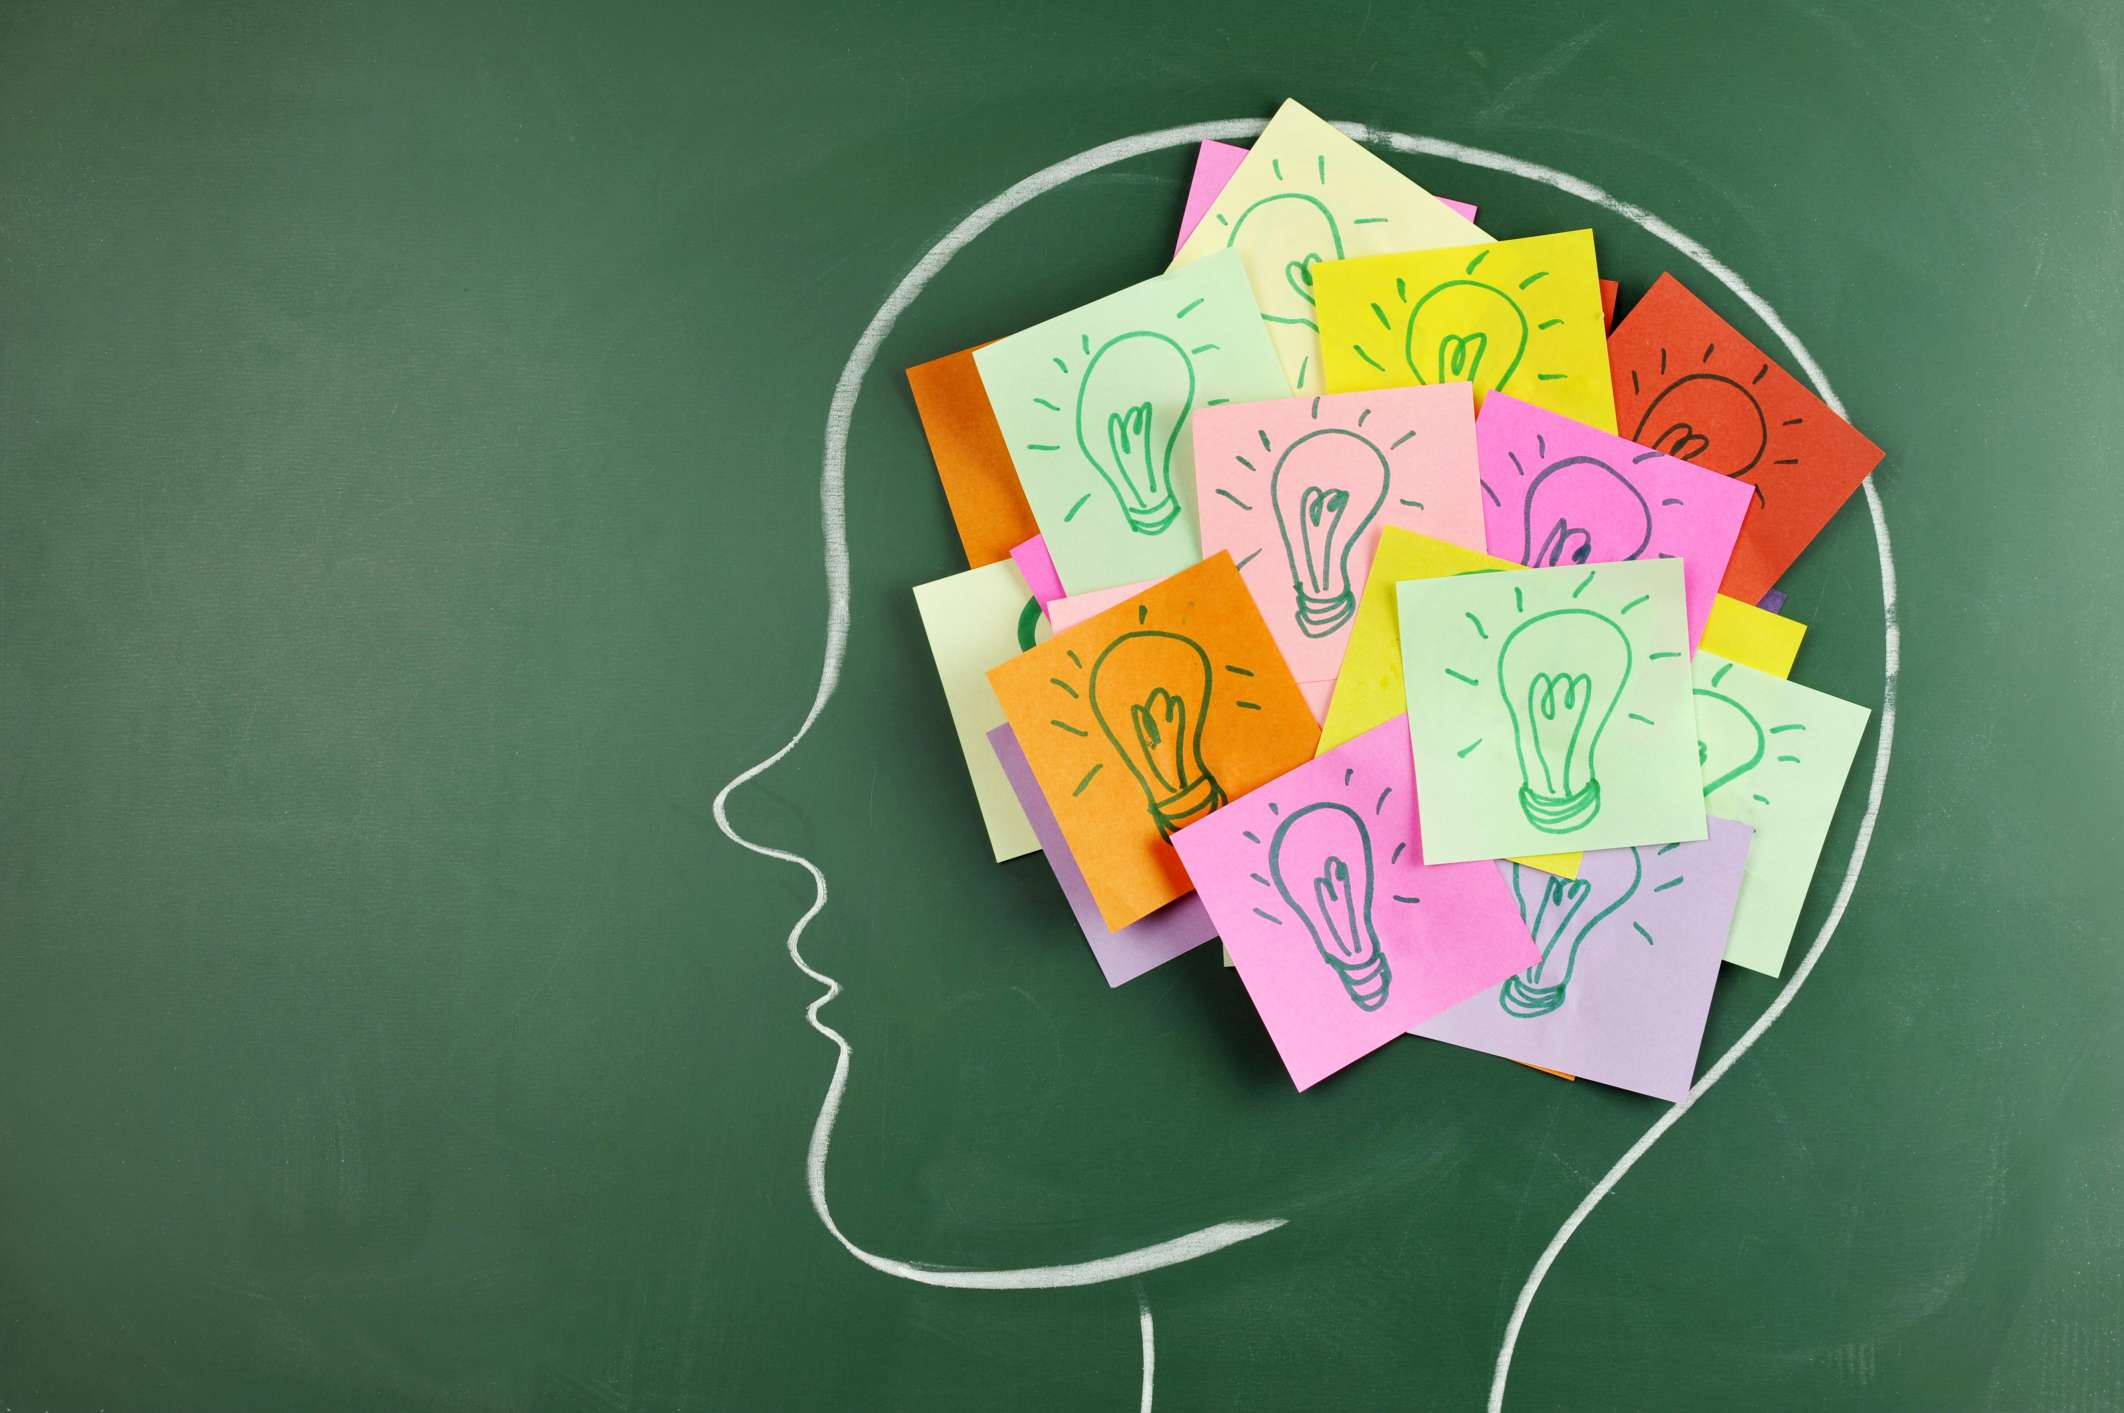 11 Methods for Improving Your Memory